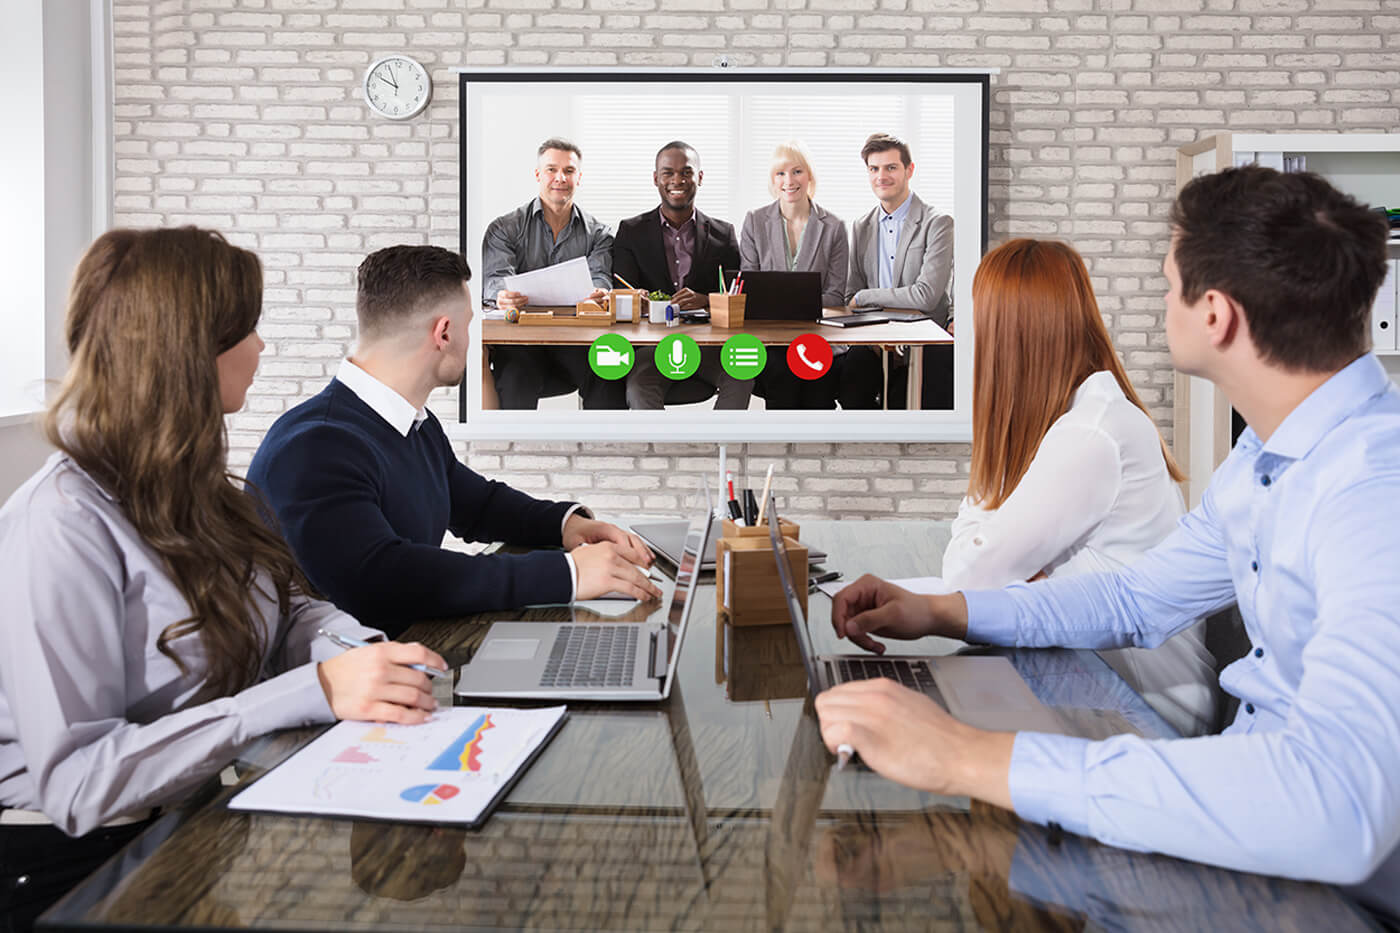 Should You Hold Meetings Face to Face or Online